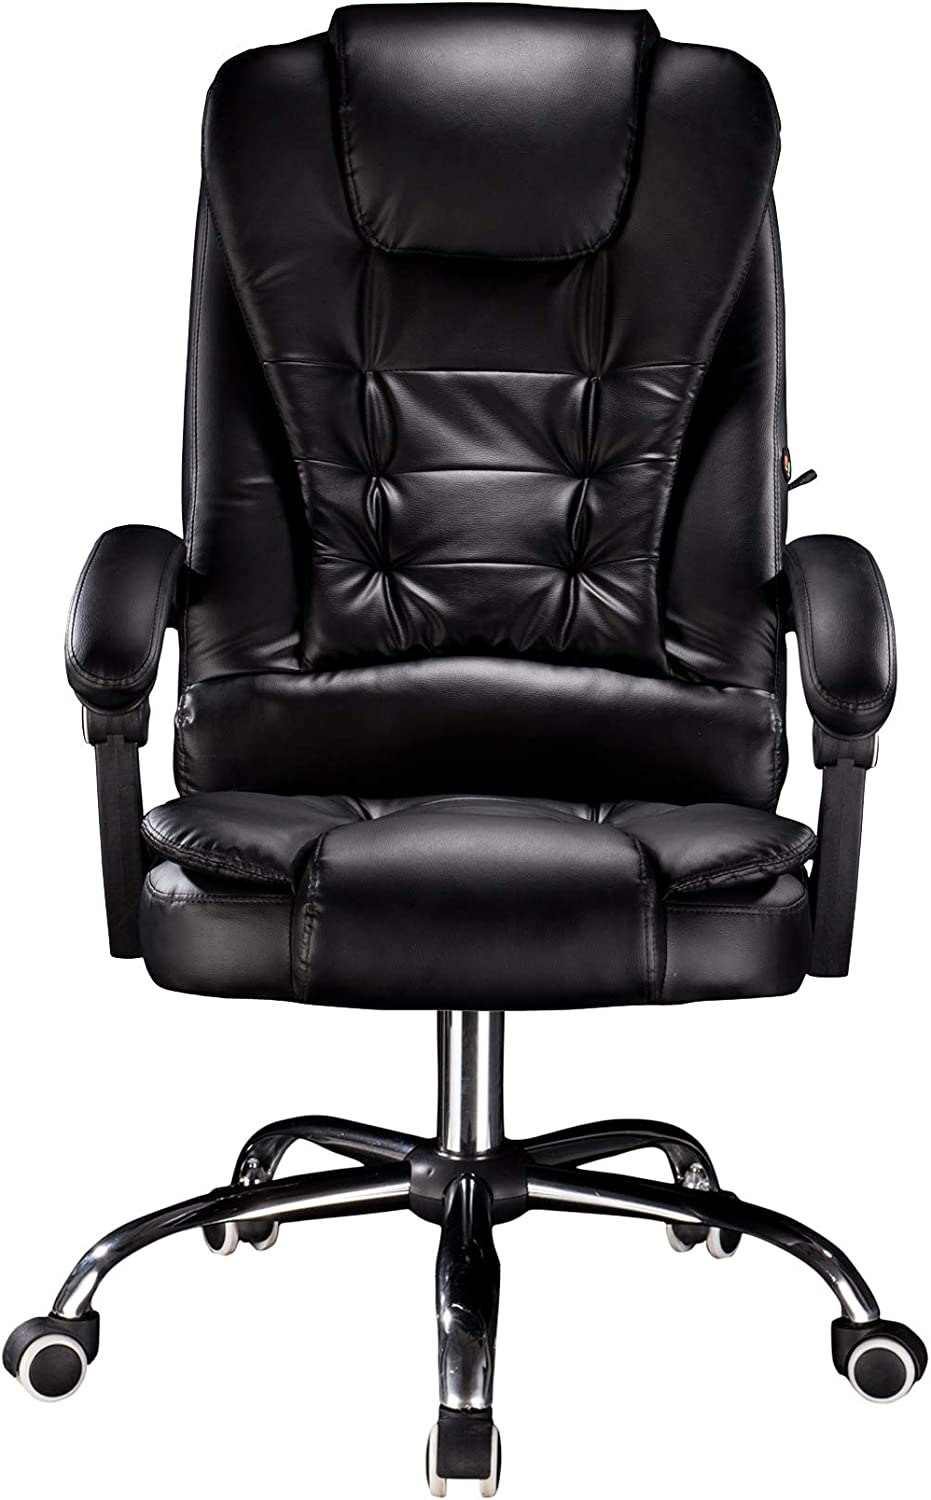 Cosyshow Comfort Genuine Leather High Back Executive Office Desk Chair Ergonomic Adjustable Recliner Computer PC Gaming Chair Footrest Armrest (Black)